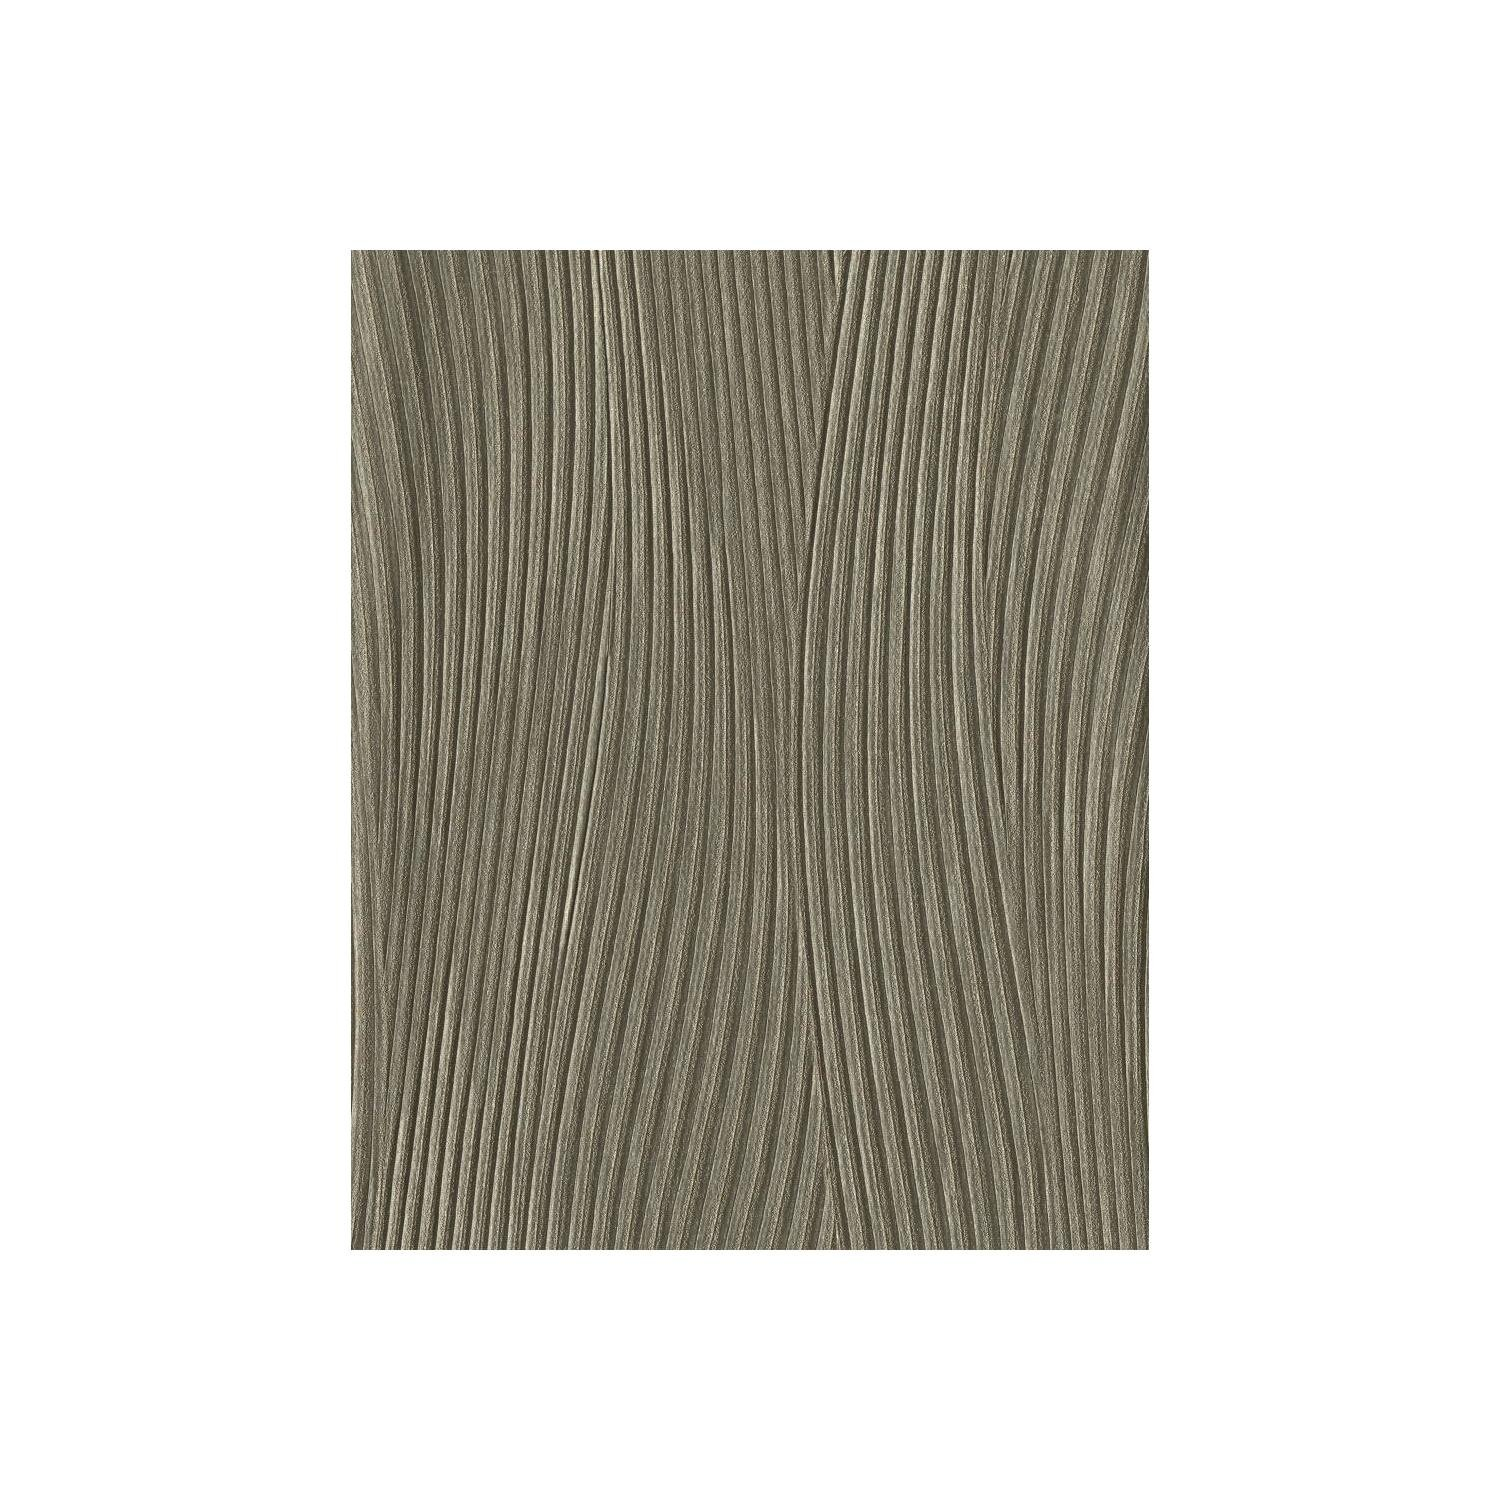 American Walls CW1681N Monterrat High Performance Wallpaper, Bronze by American Walls